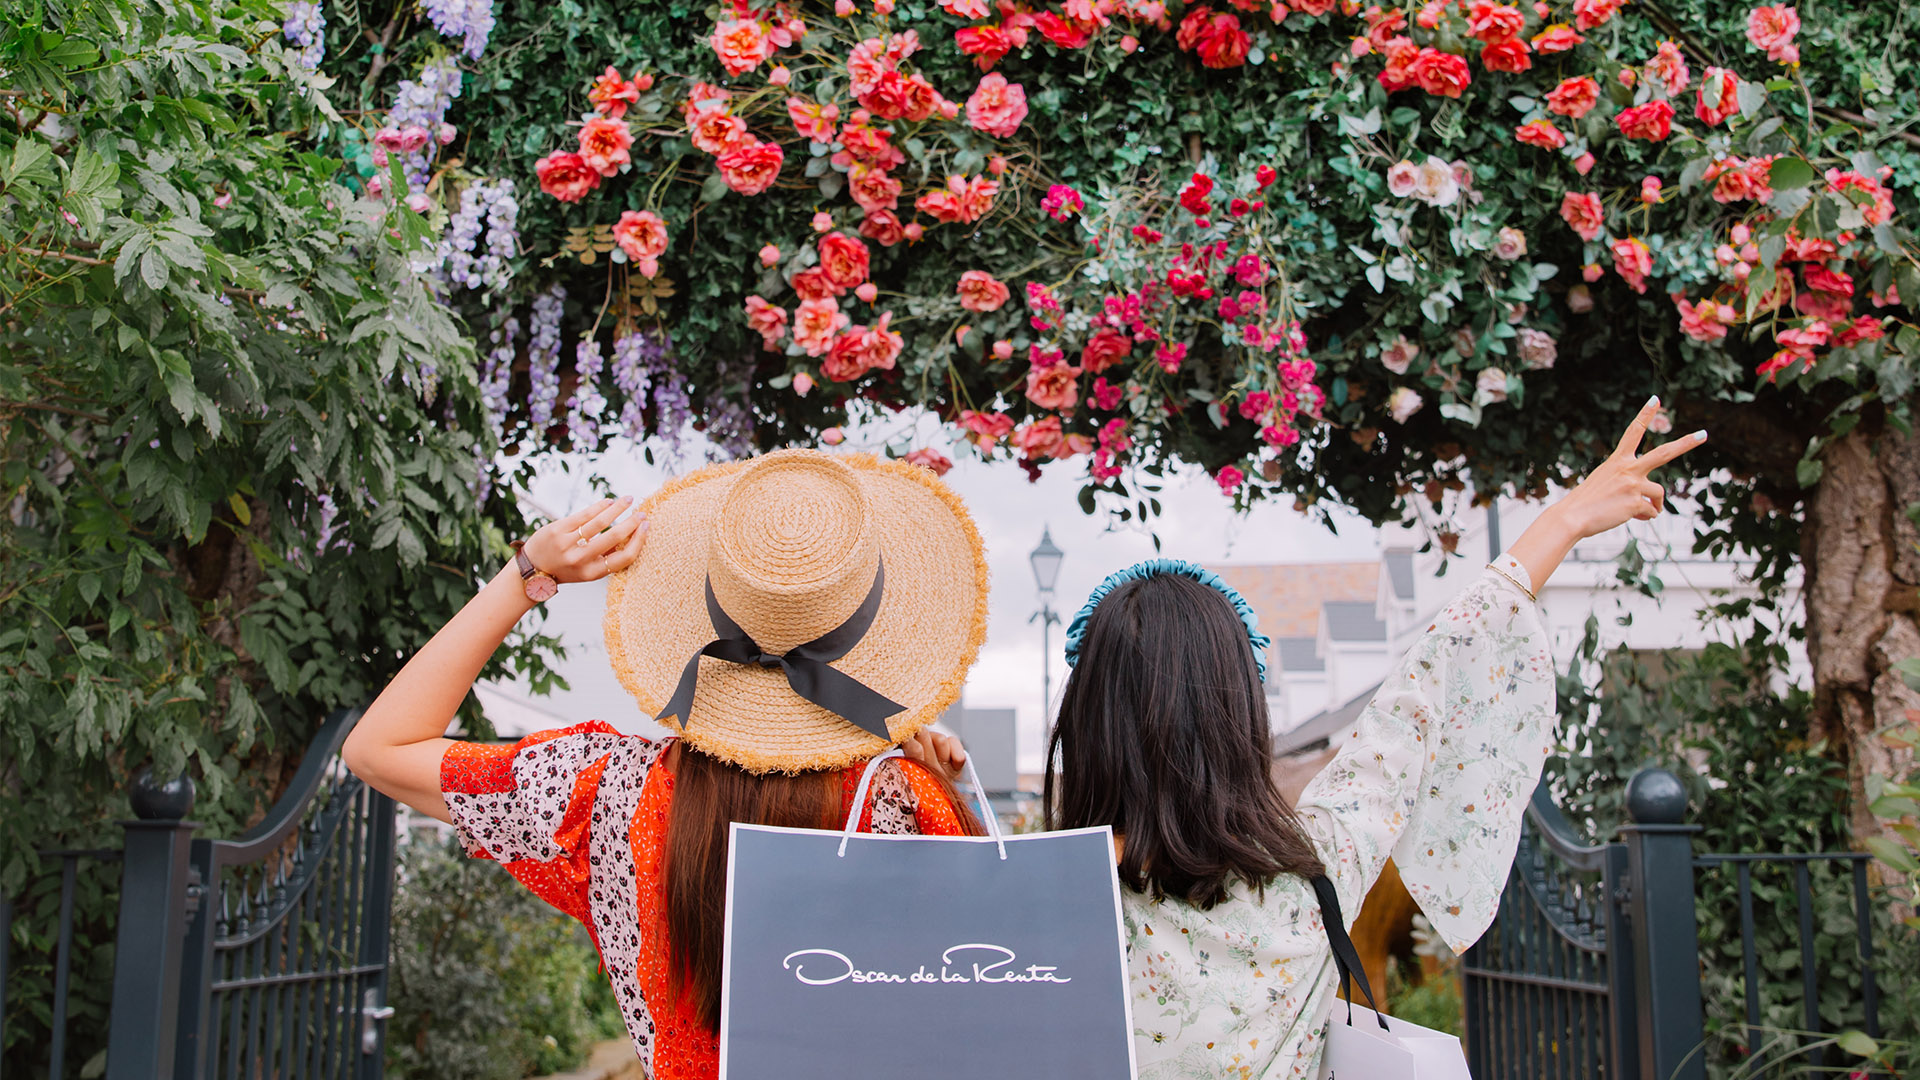 Bicester Village shopping experience with friends January 2020